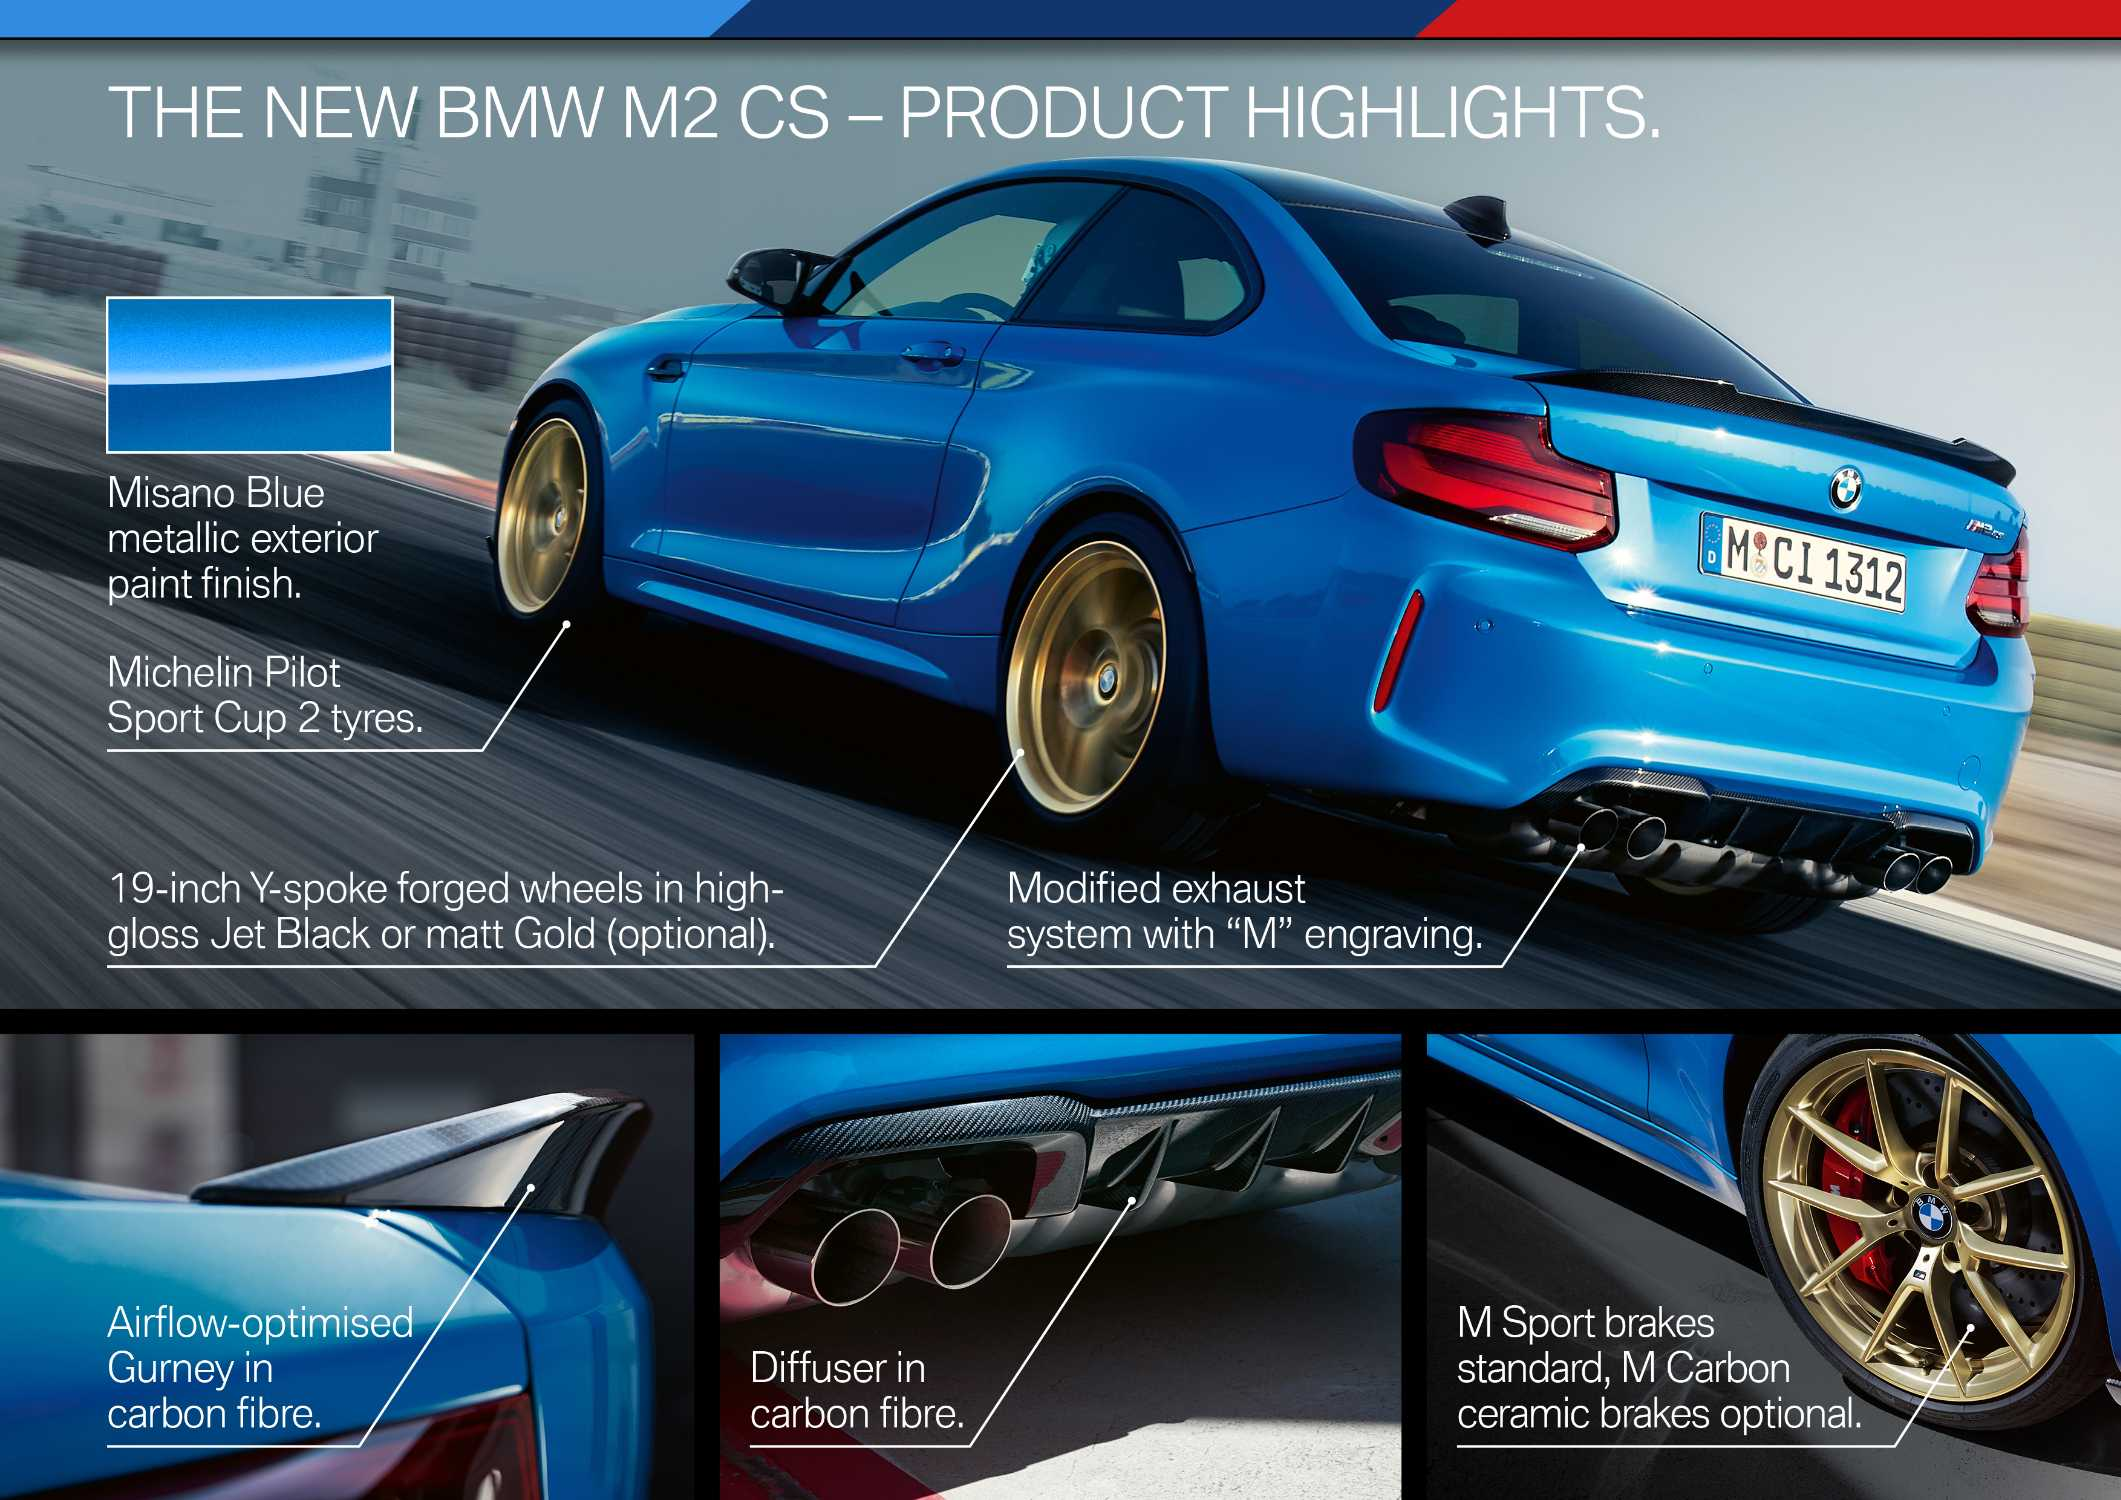 The all-new BMW M2 CS (11/2019).